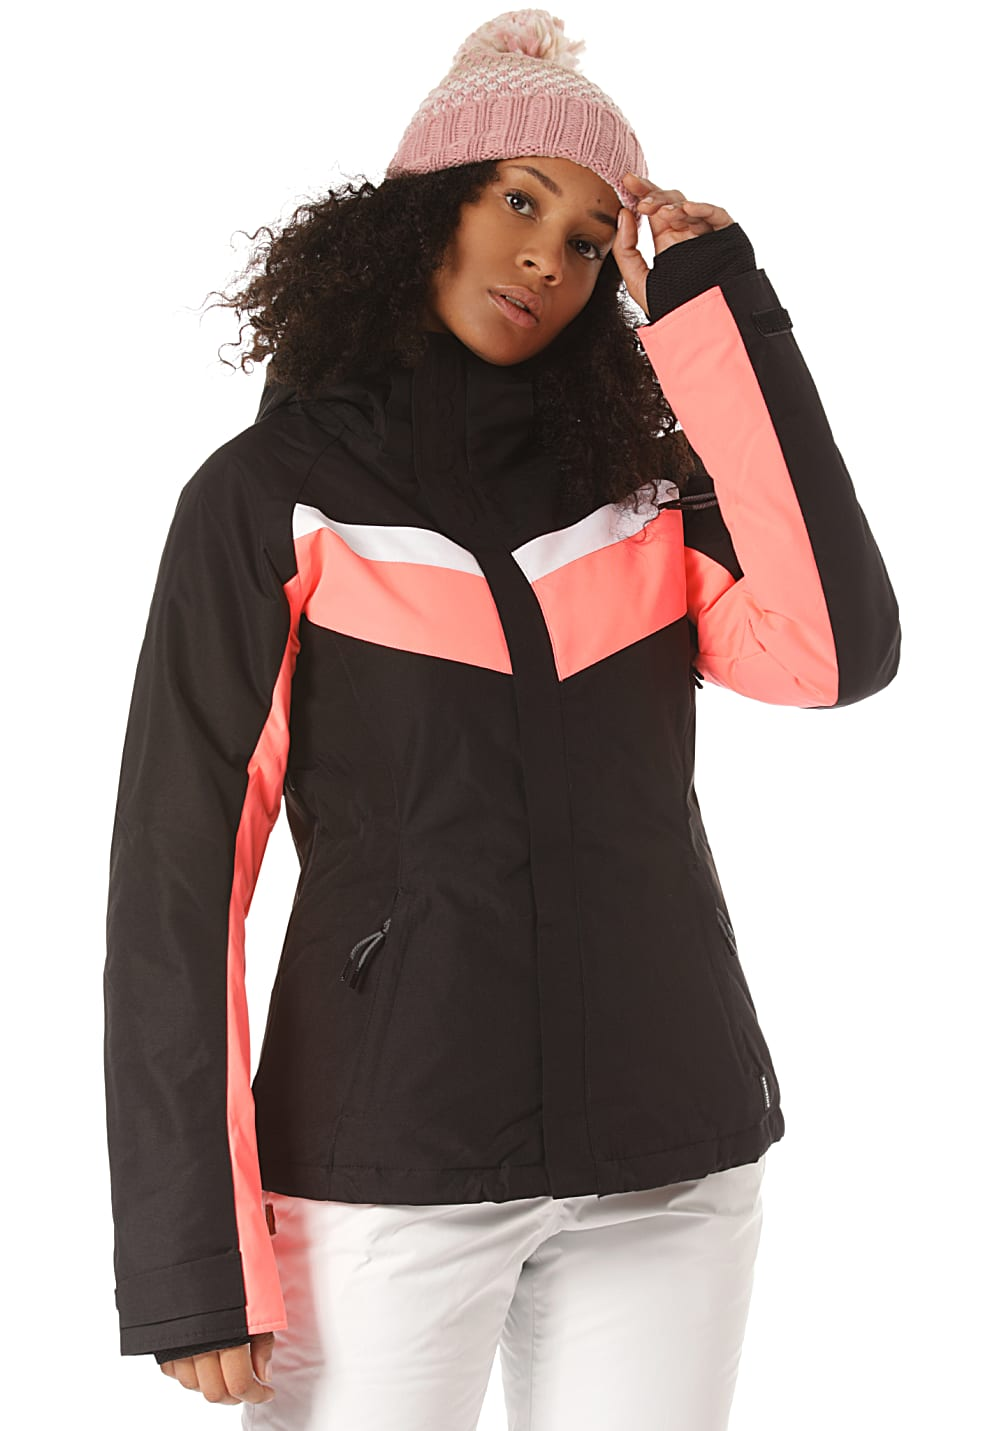 Jacken - Chiemsee Skijacke Skijacke für Damen Schwarz  - Onlineshop Planet Sports